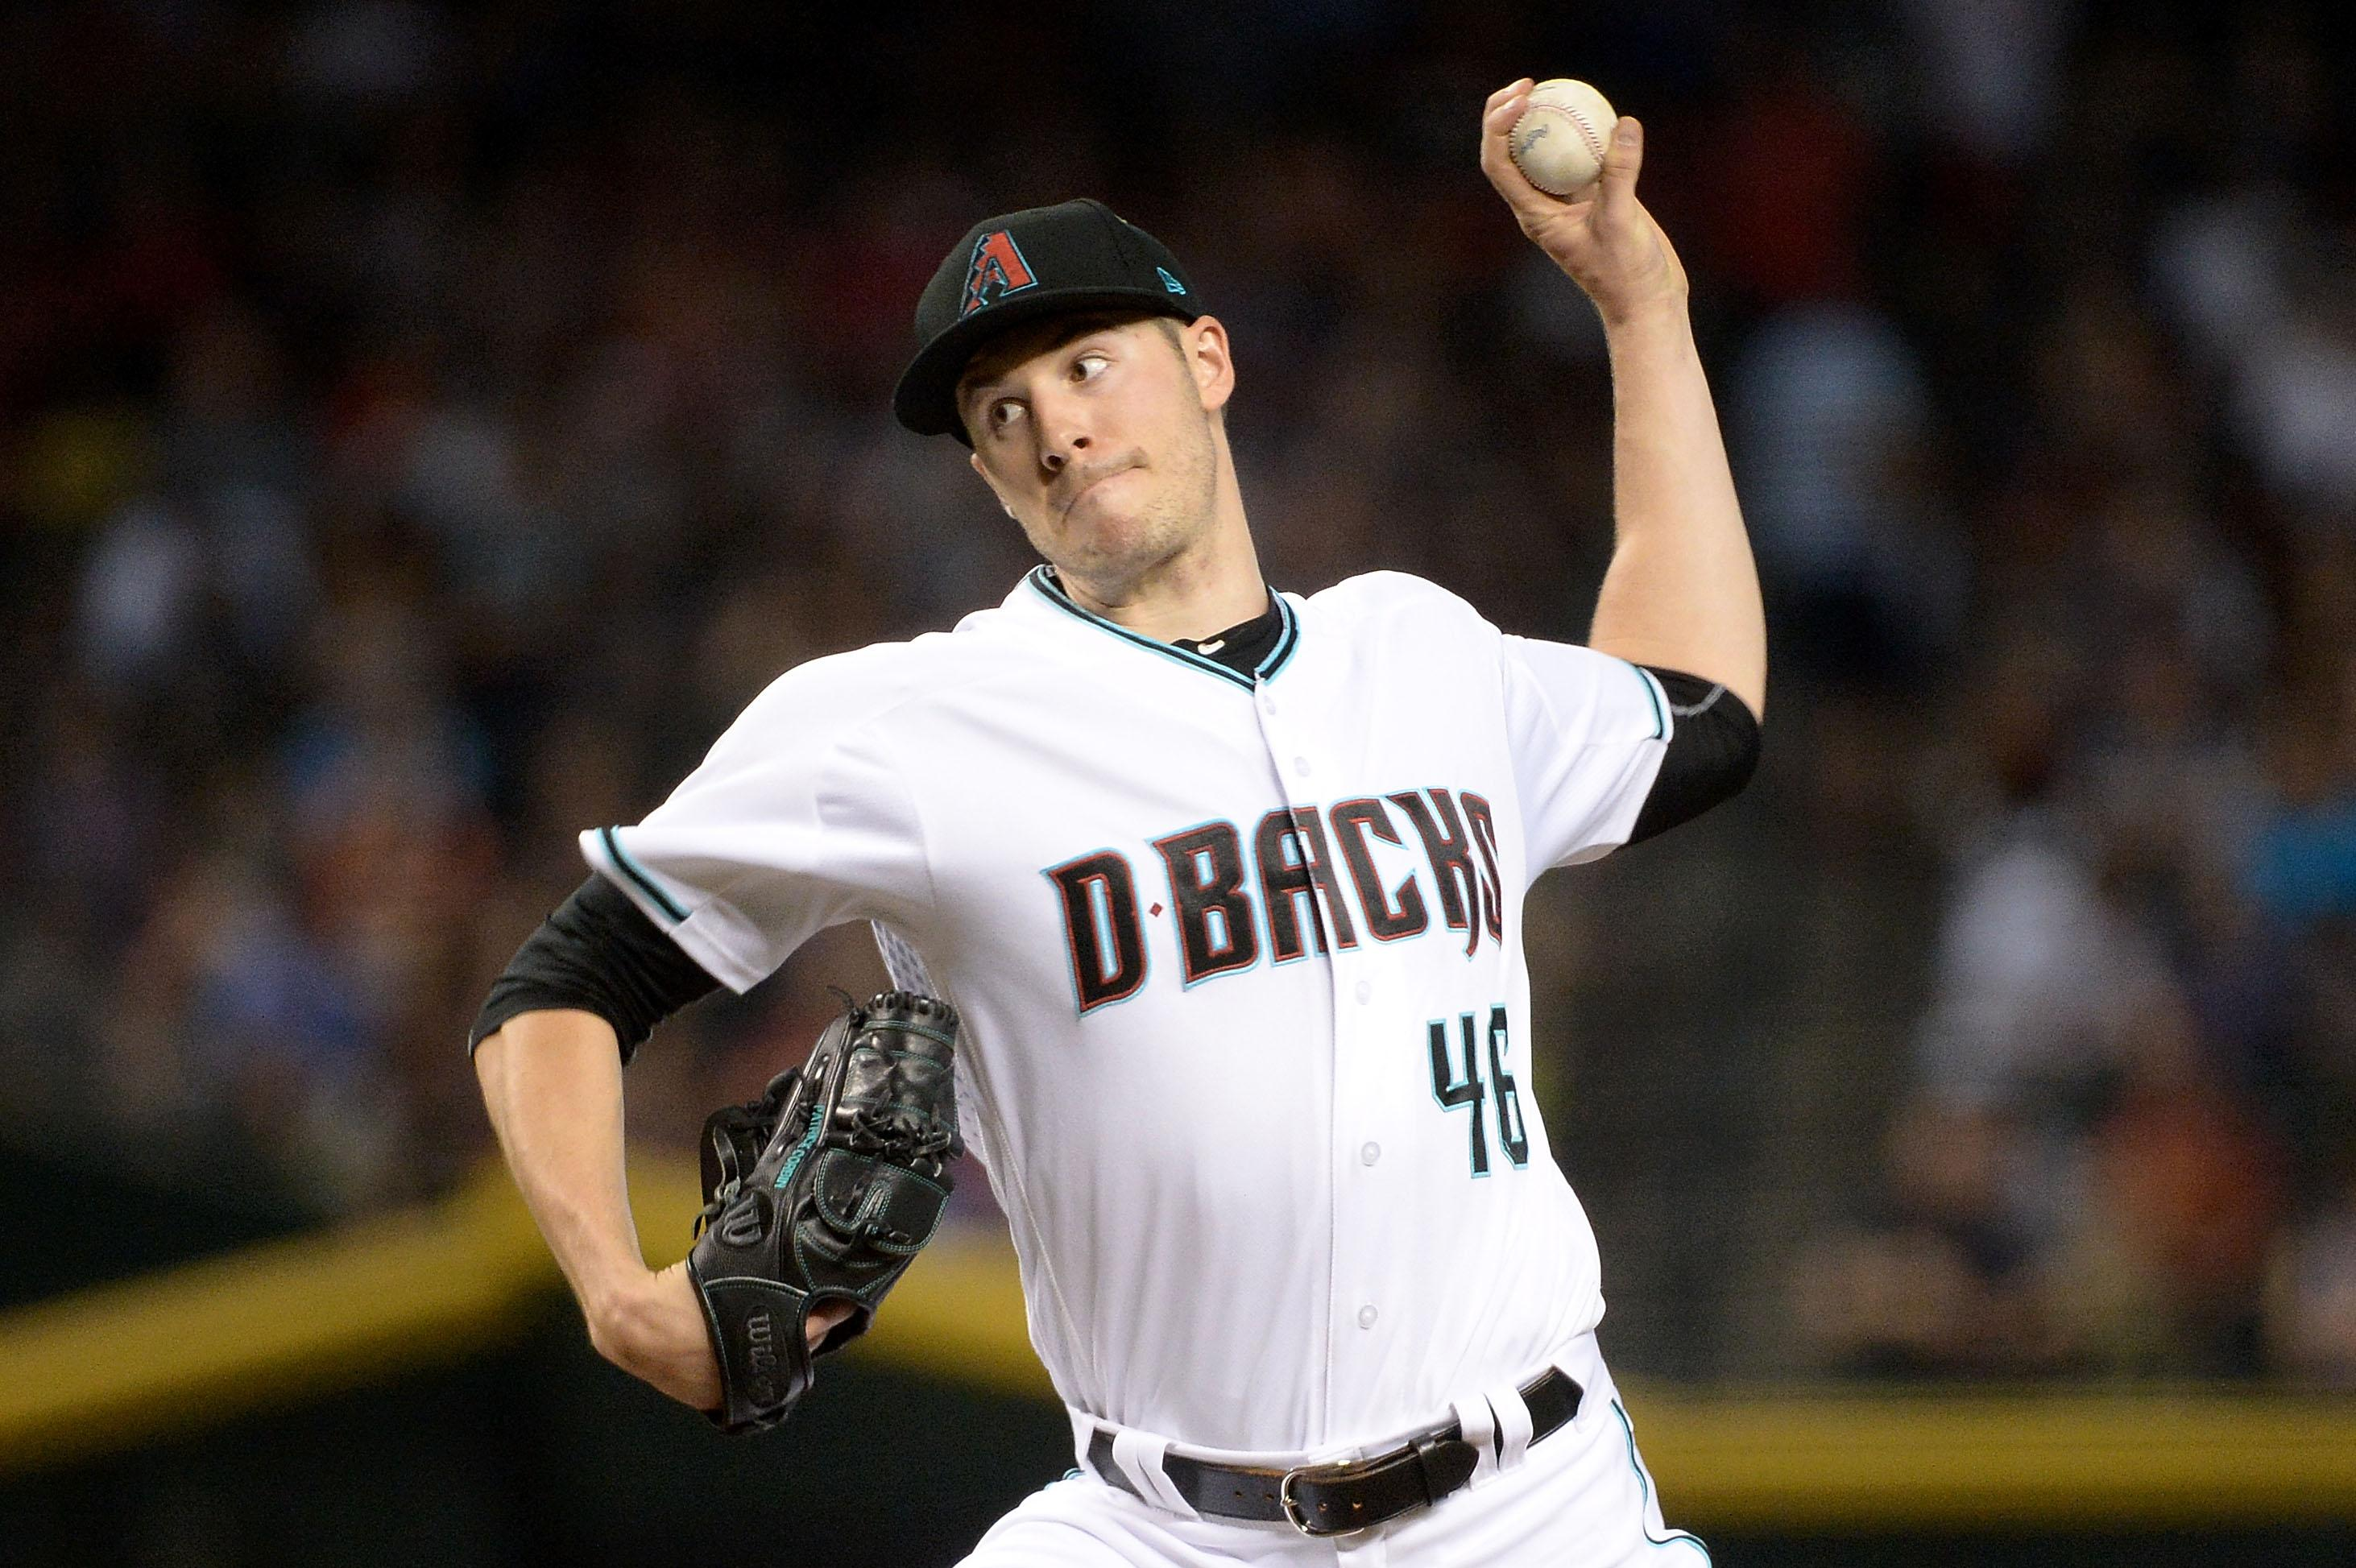 Yankees drew their Patrick Corbin line before spurning